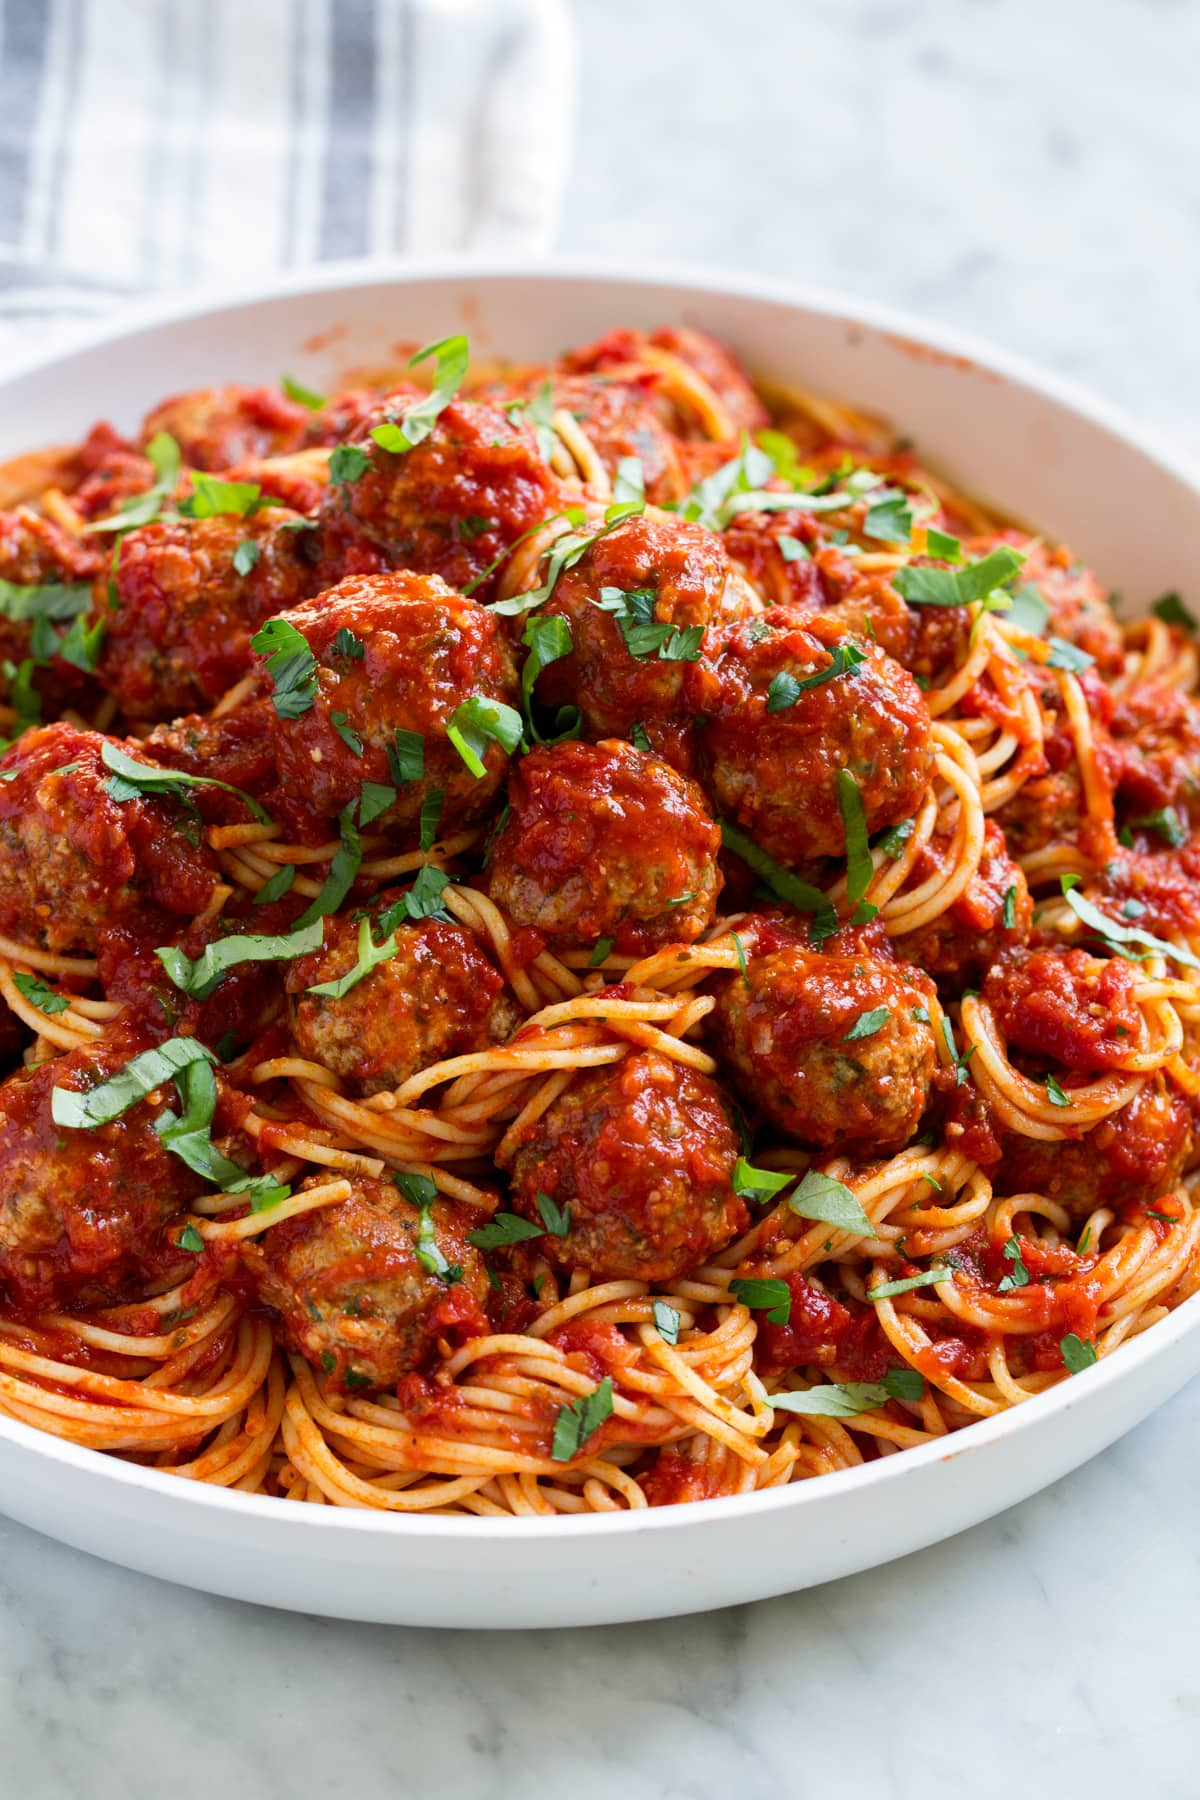 Best Meatball Recipe Baked Or Fried Cooking Classy